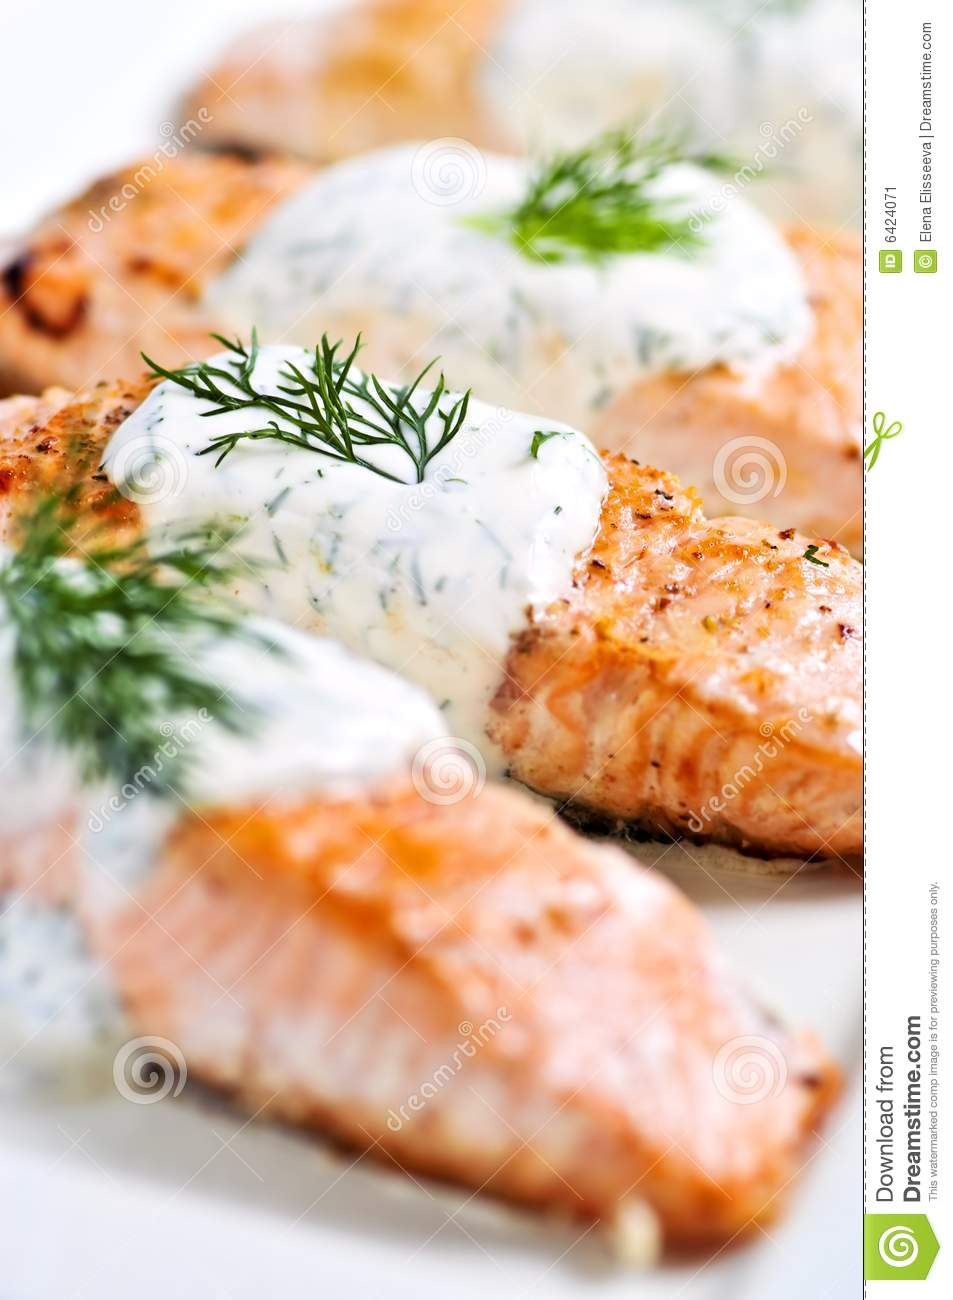 how to cook whole salmon fish in the oven